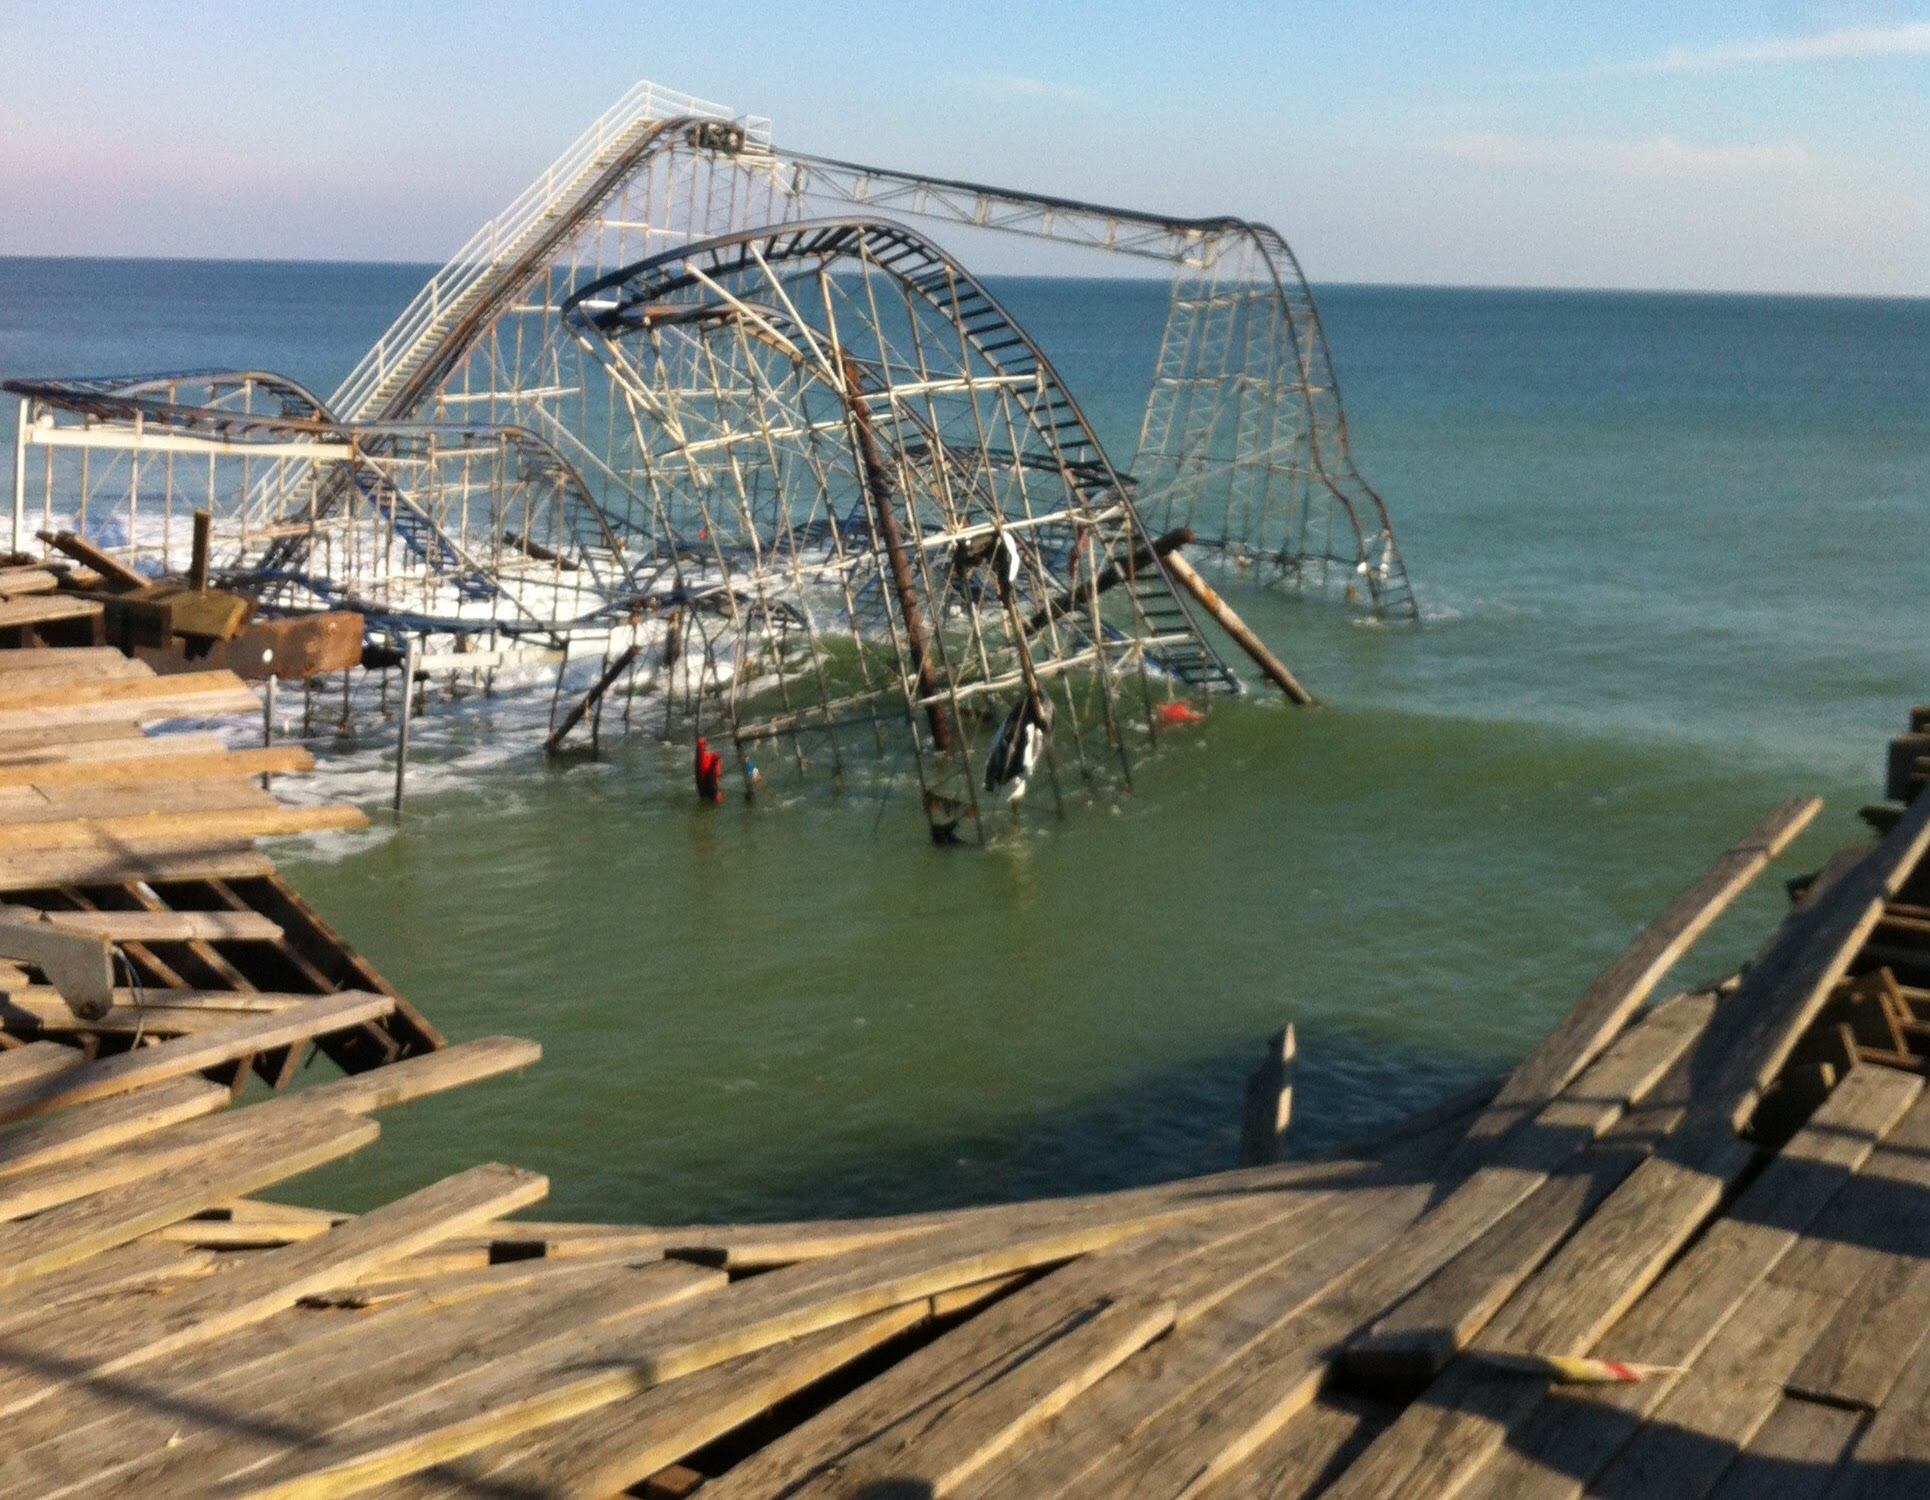 Casino Pier, destroyed and sitting in the ocean, Nov. 2012. (Photo: Daniel Nee)